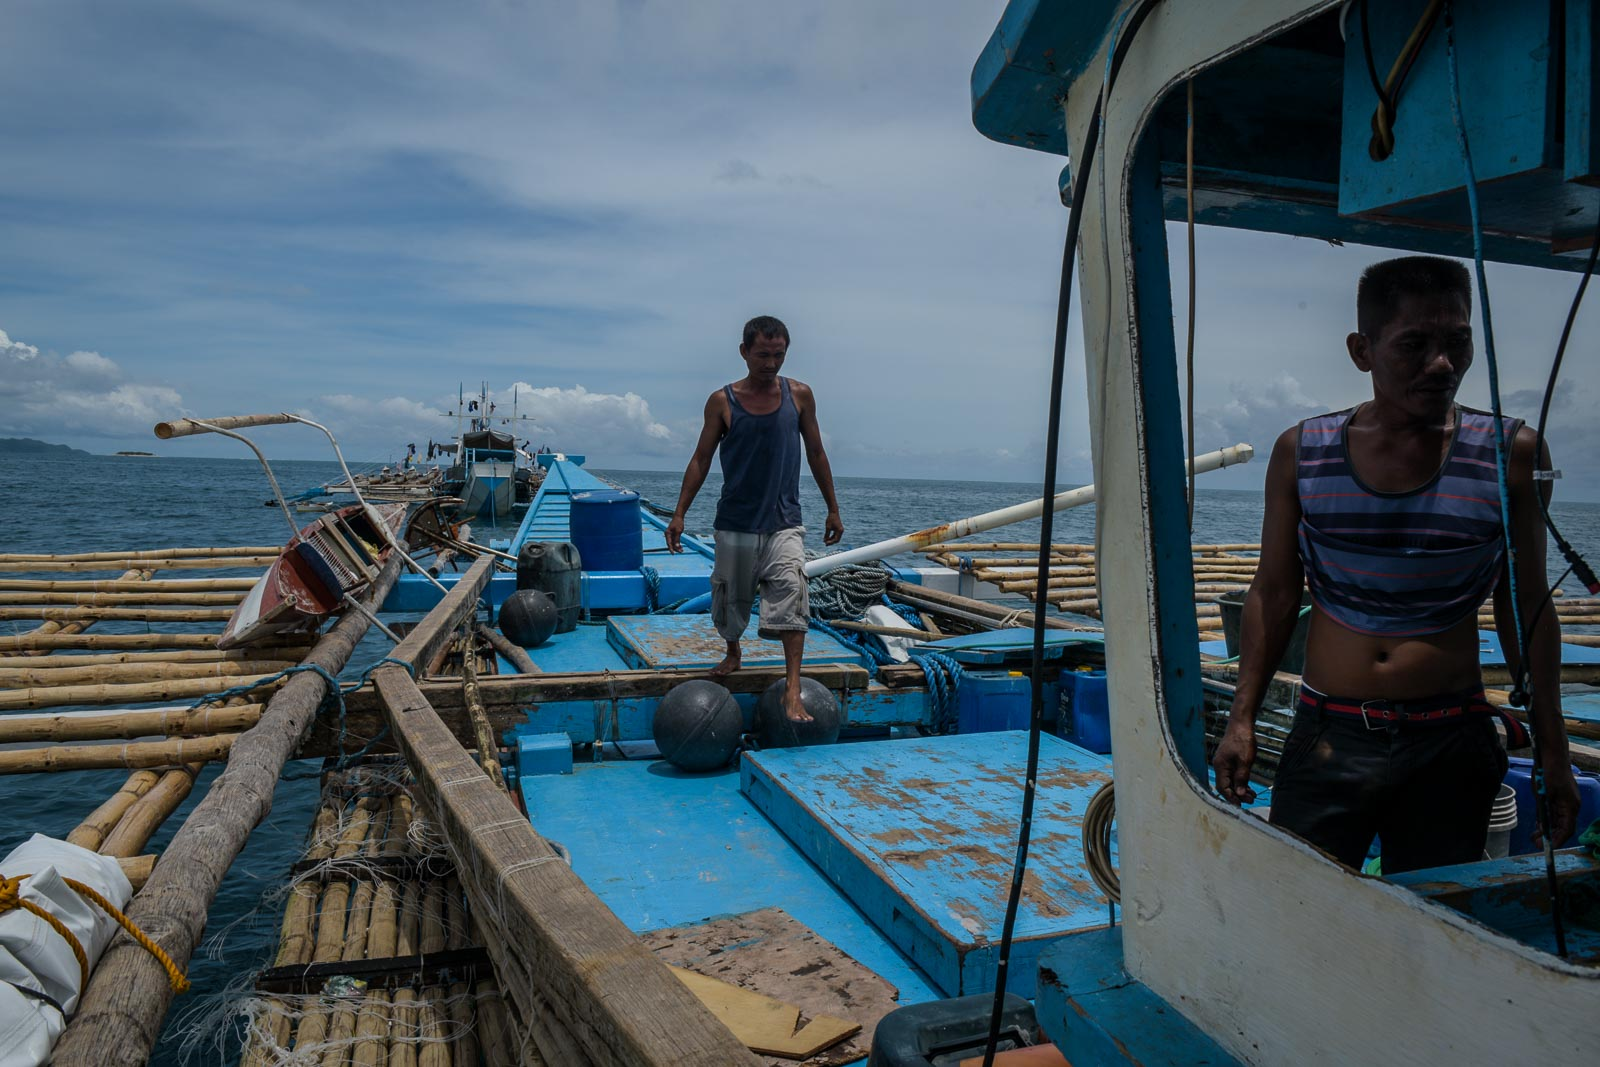 ONBOARD.The boat's mast falls after also being hit by the Chinese vessel near Recto Bank (Reed Bank) in the West Philippine Sea.